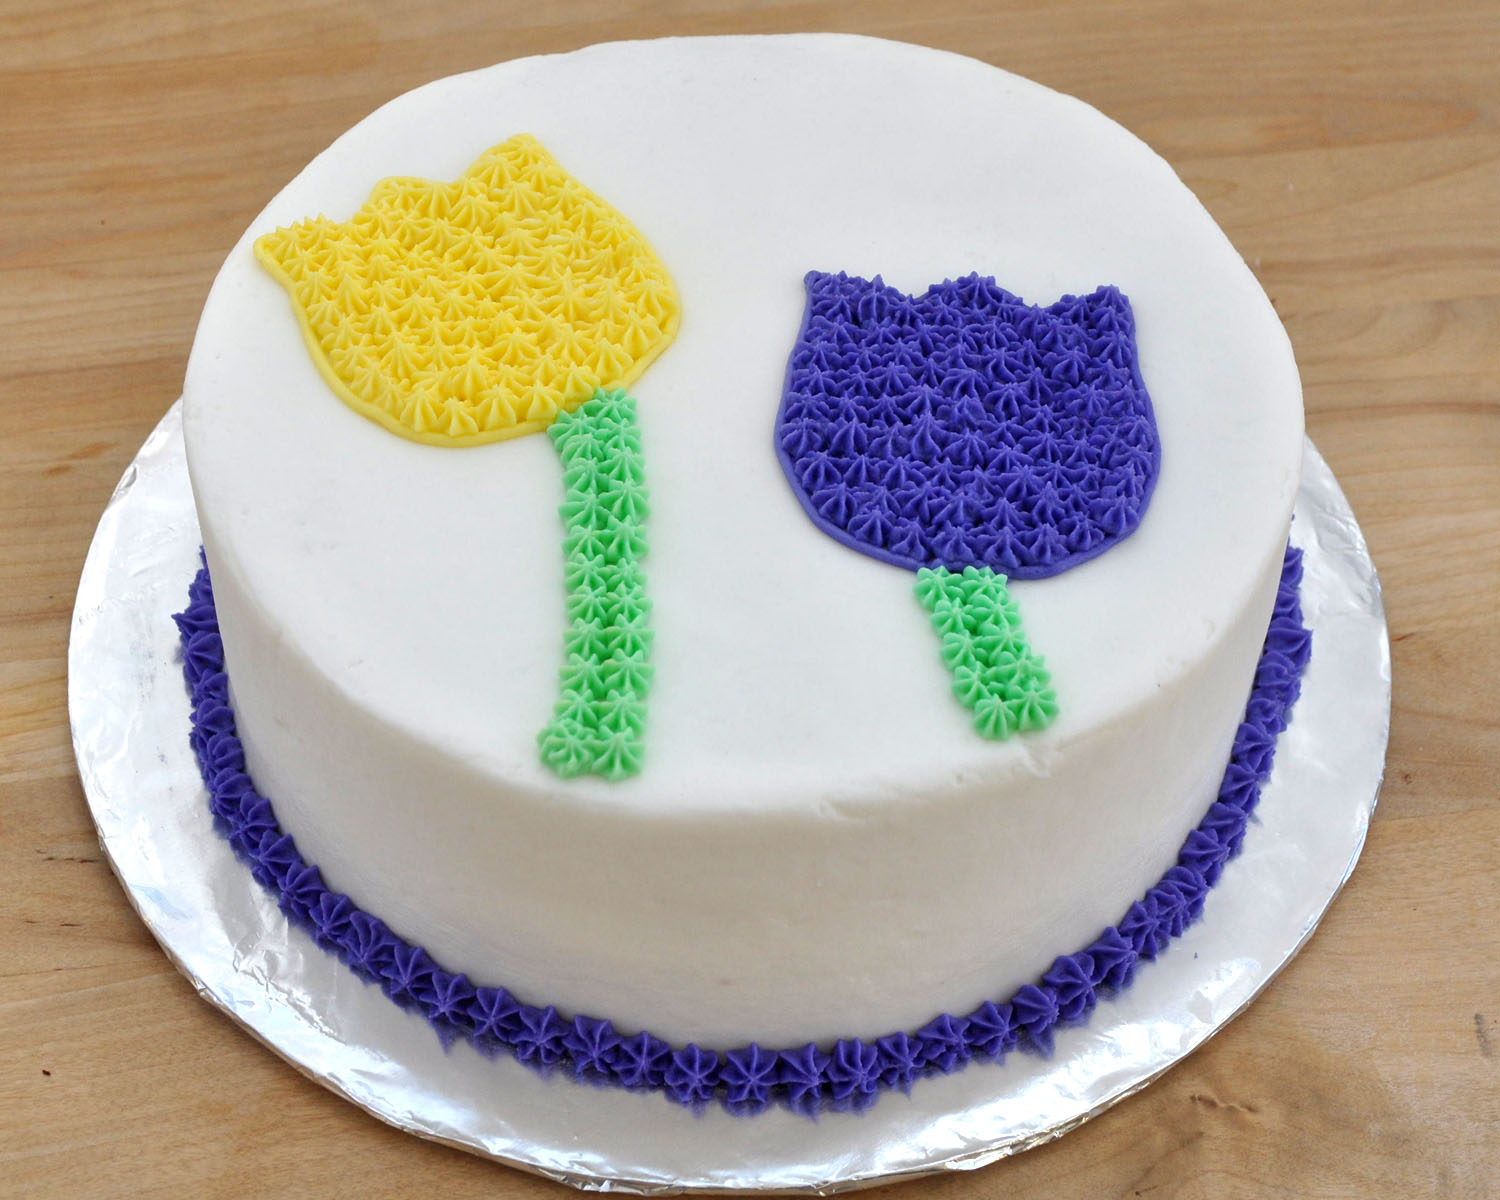 Cake Decorating Birthday Cakes : Beki Cook s Cake Blog: Cake Decorating 101 - Easy Birthday ...